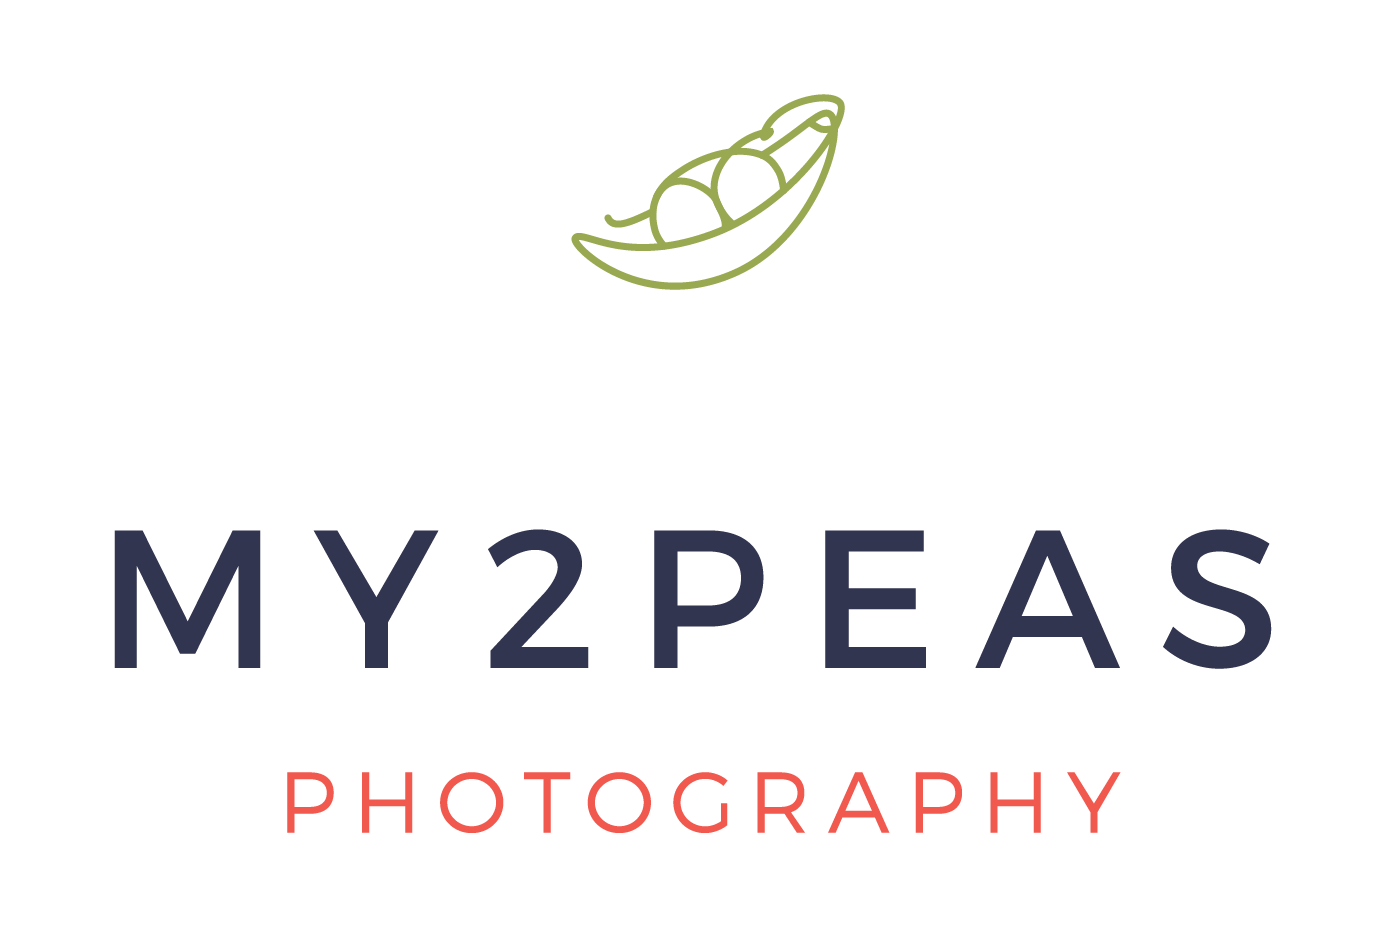 MY2PEAS PHOTOGRAPHY